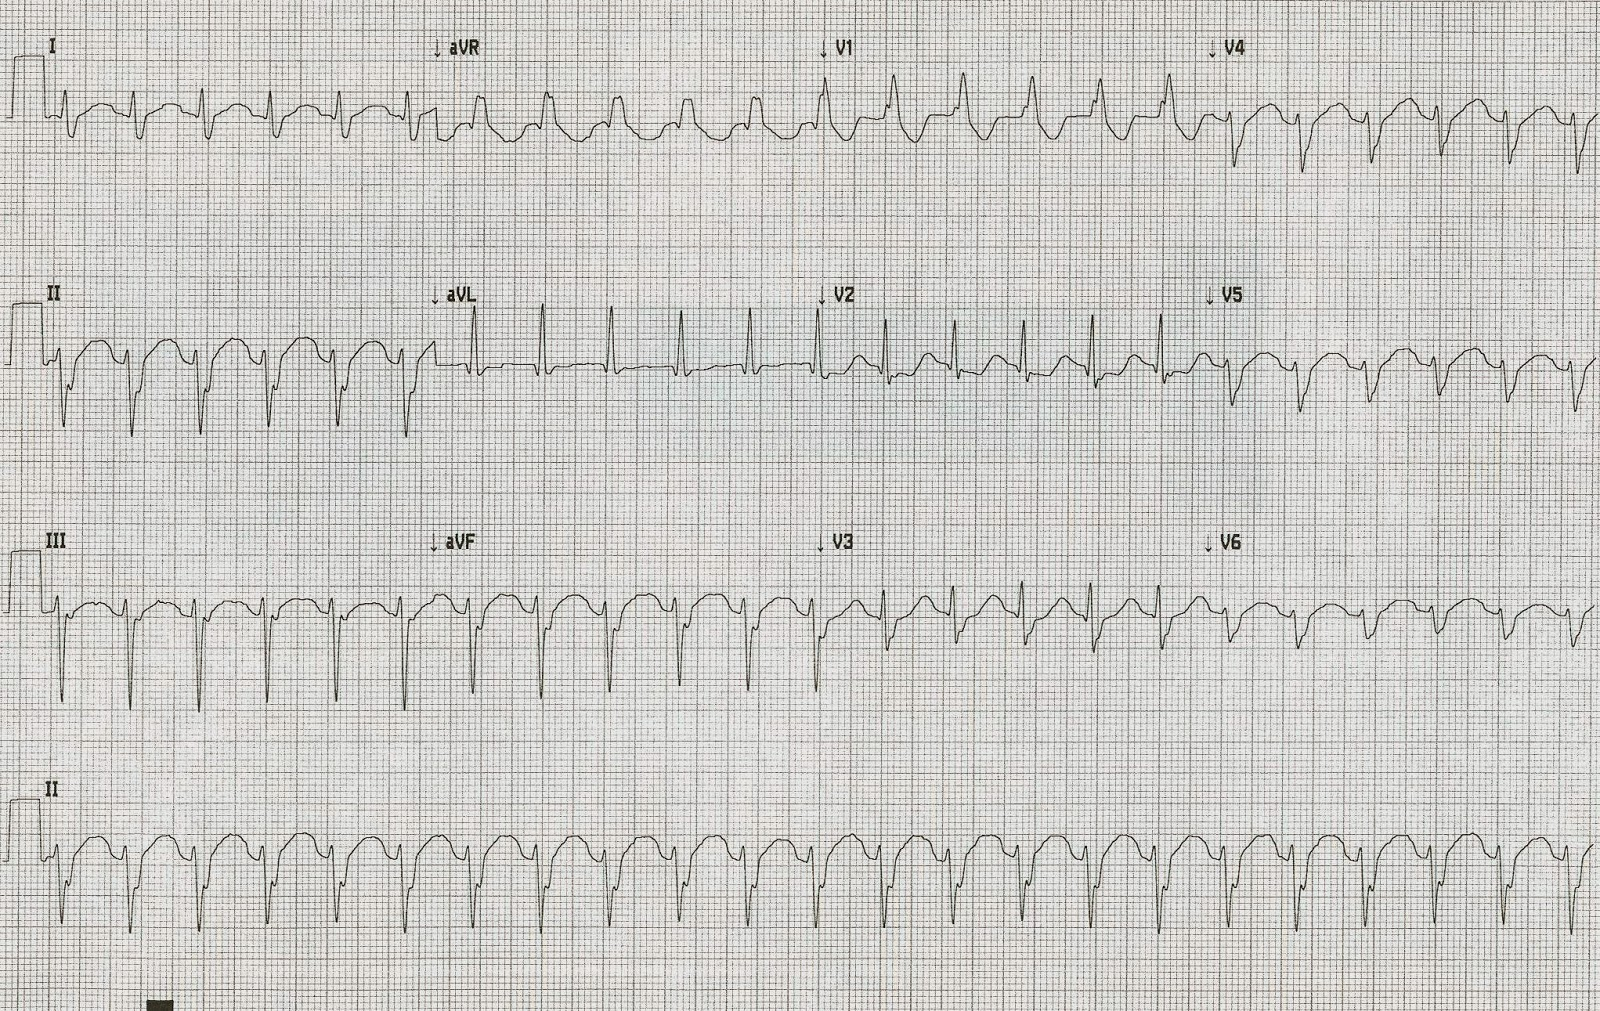 Dr Smith S Ecg Blog Wide Complex Tachycardia What Is The Diagnosis